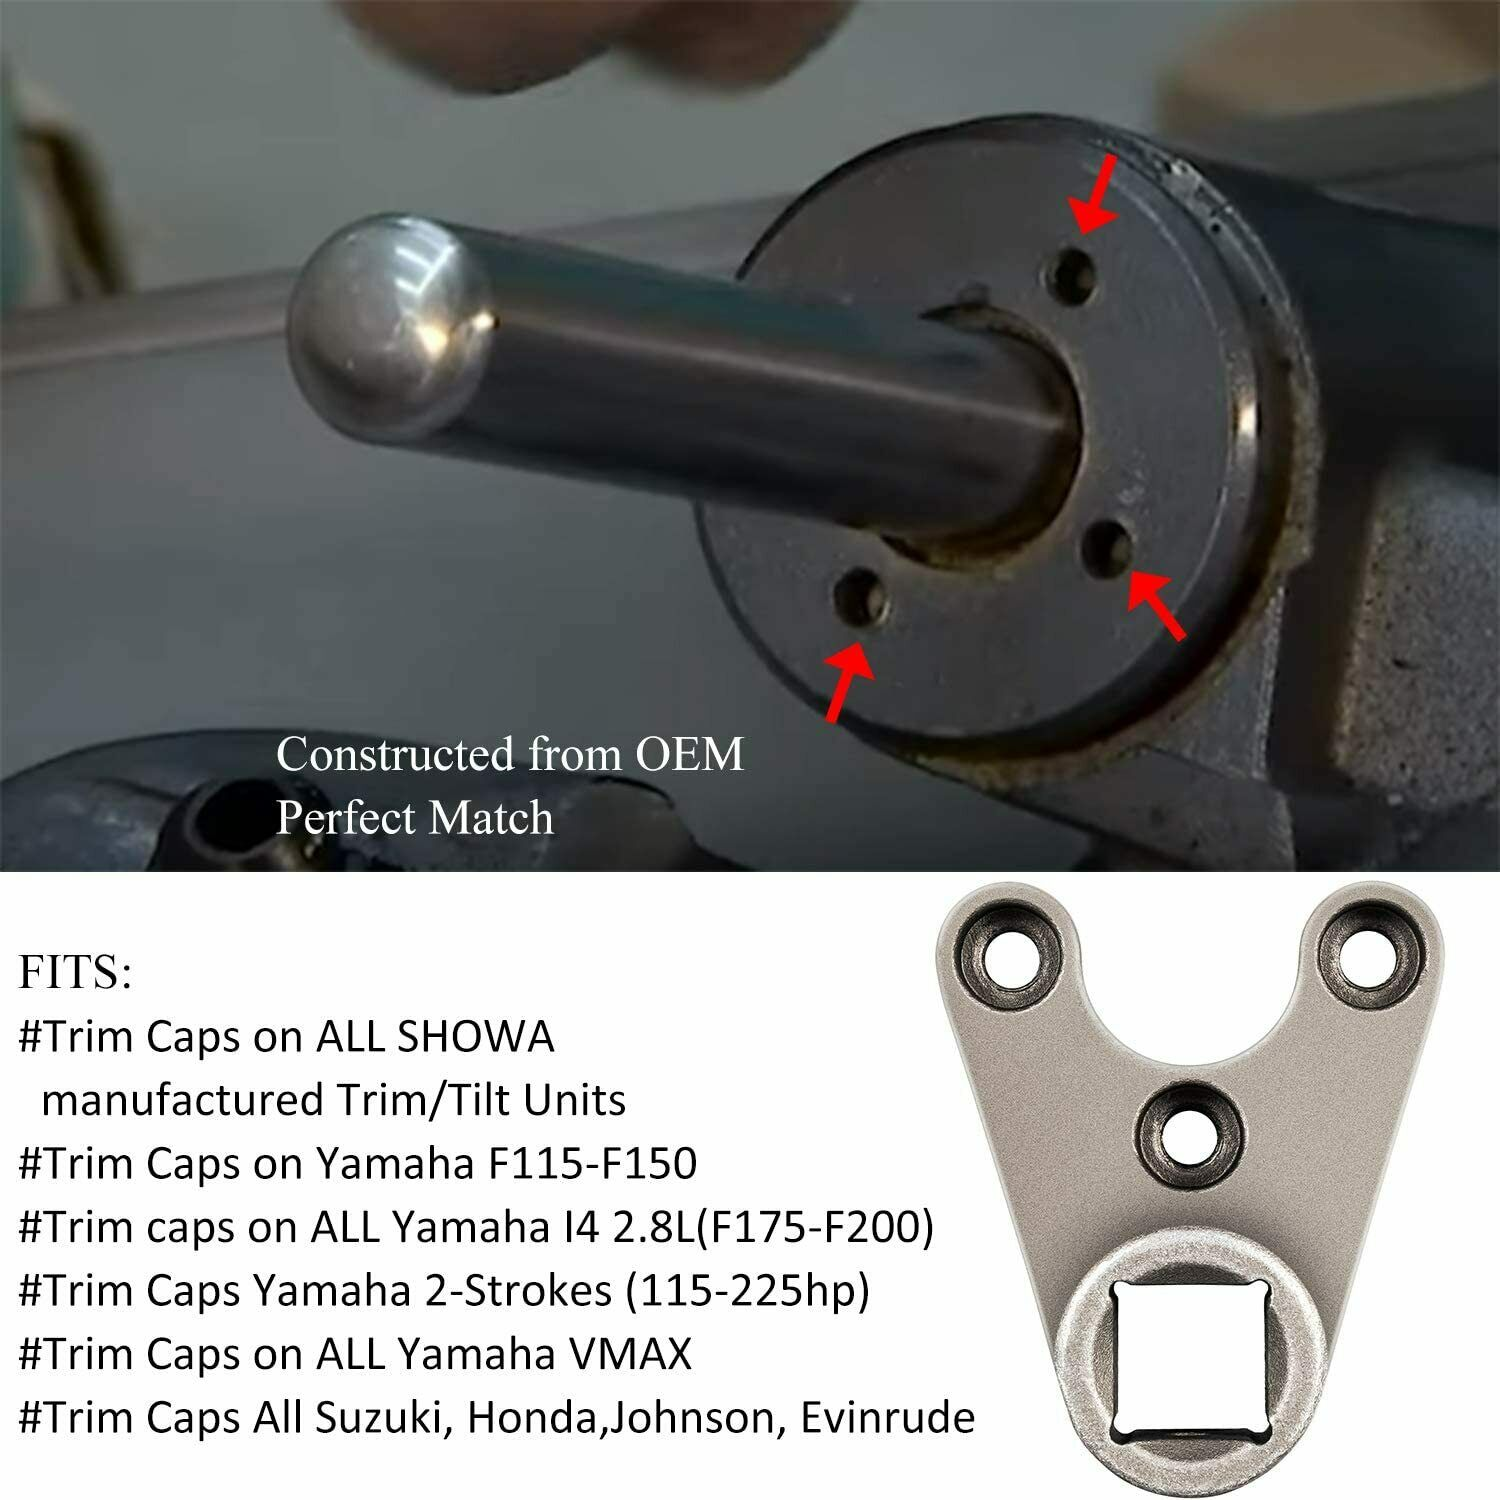 Suzuki Evinrude Trim Seals on Hydraulic Cylinders Johnson Honda Outboards Remove Trim//Tilt Caps Marine Outboard Trim//Tilt Pin Wrench AMT0006-32mm x 4mm for Yamaha